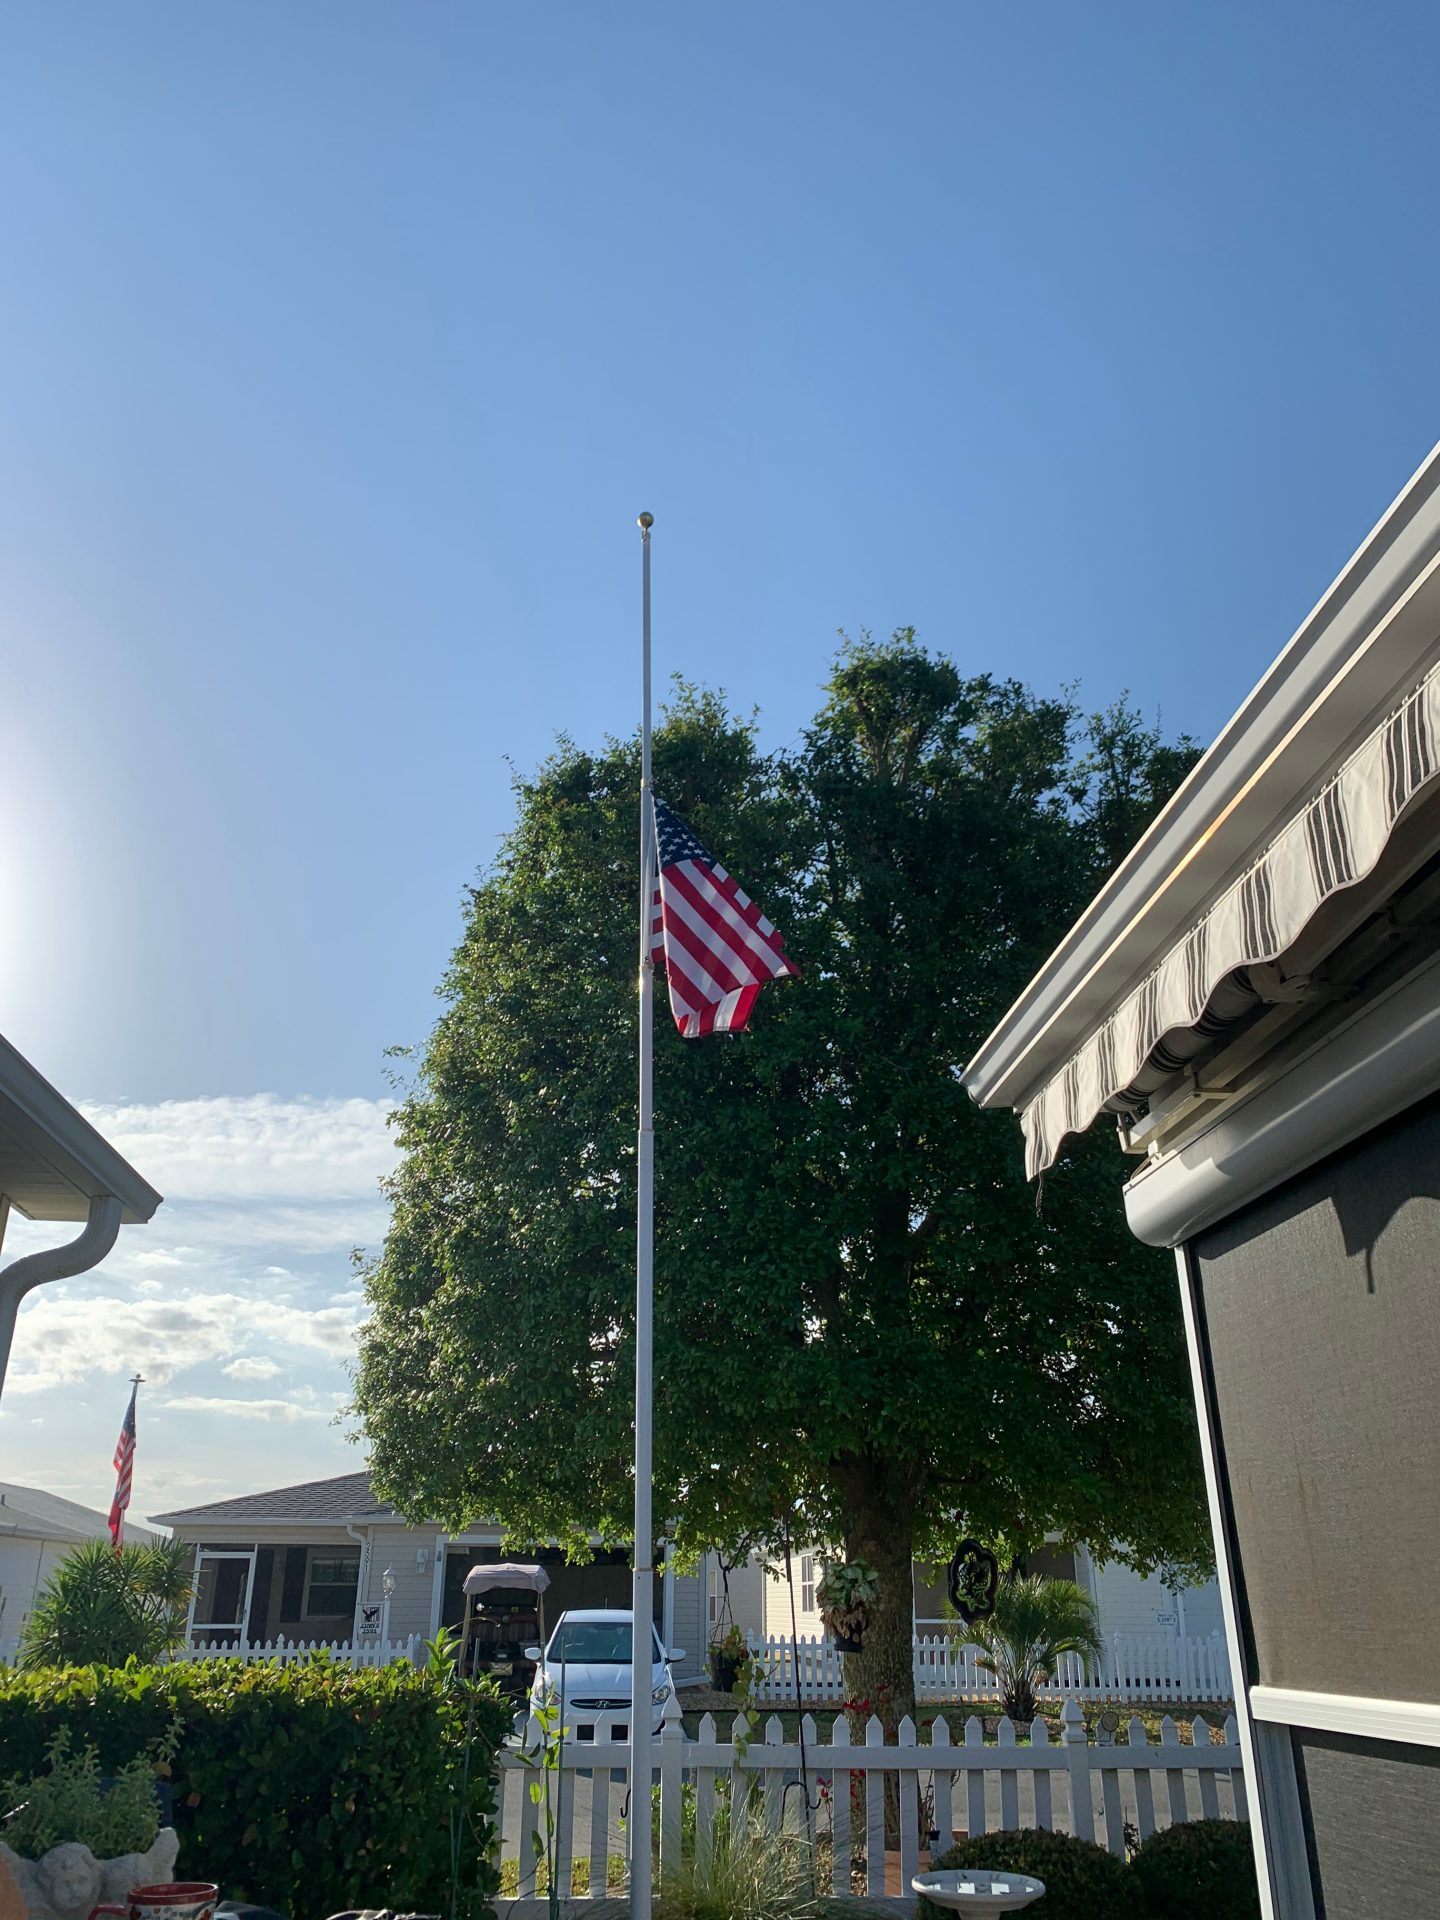 Pops flag at half-staff in honor of our service hero.